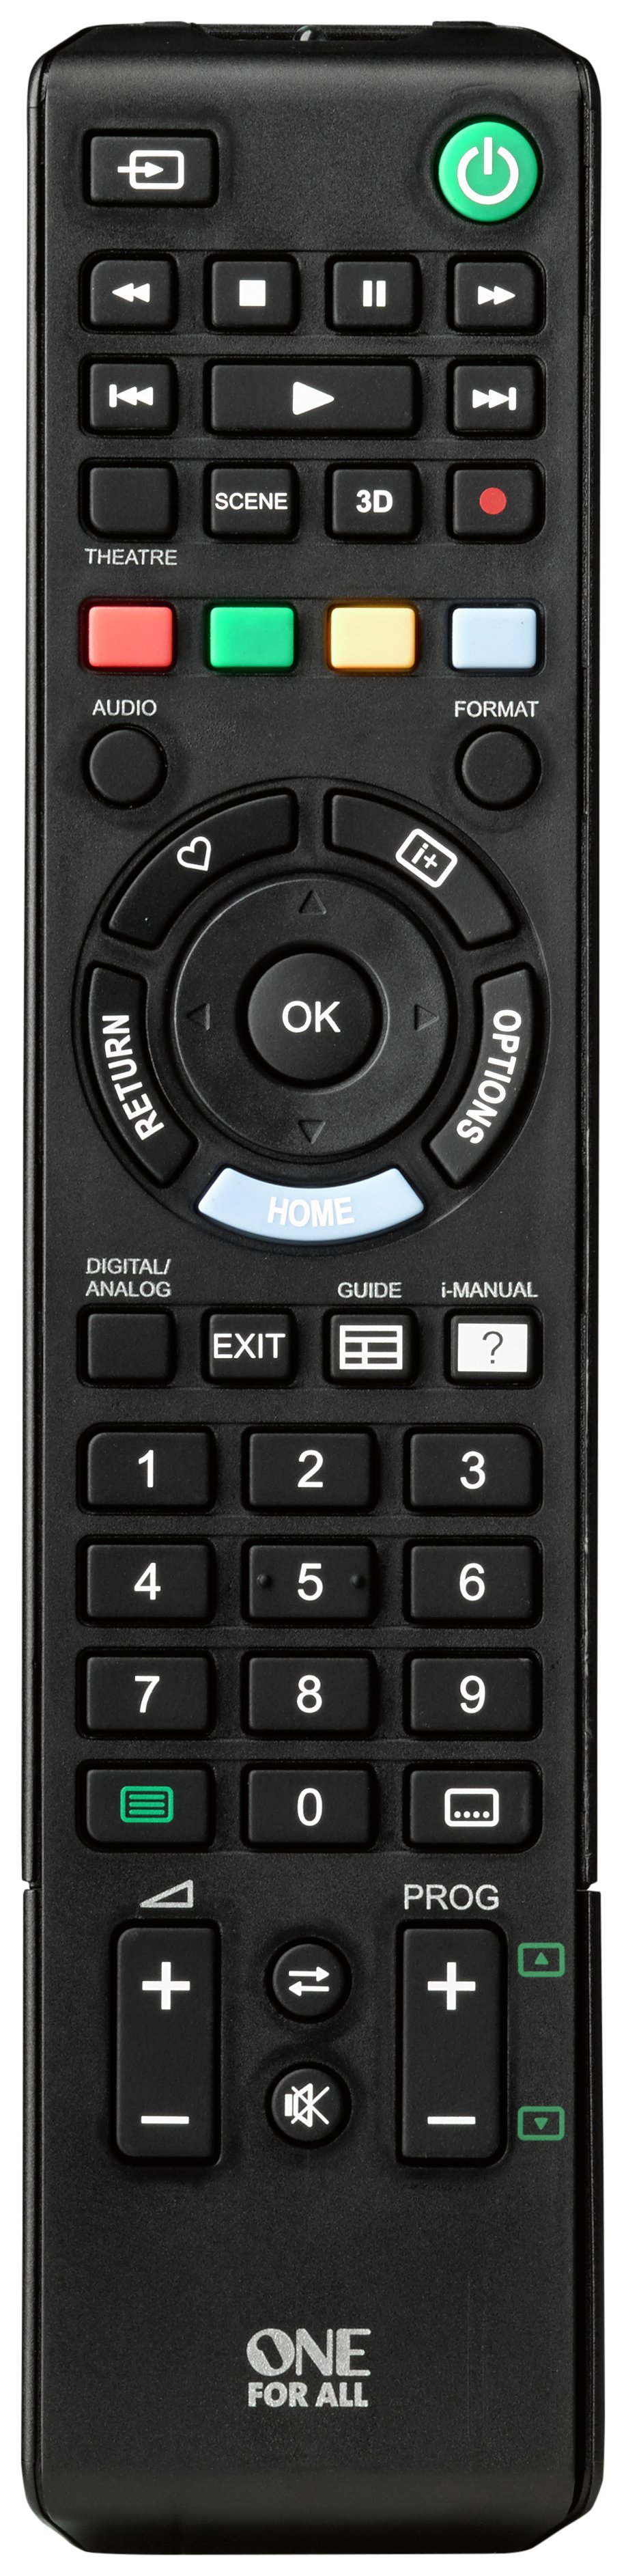 sony tv remote. one for all sony replacement remote tv argos